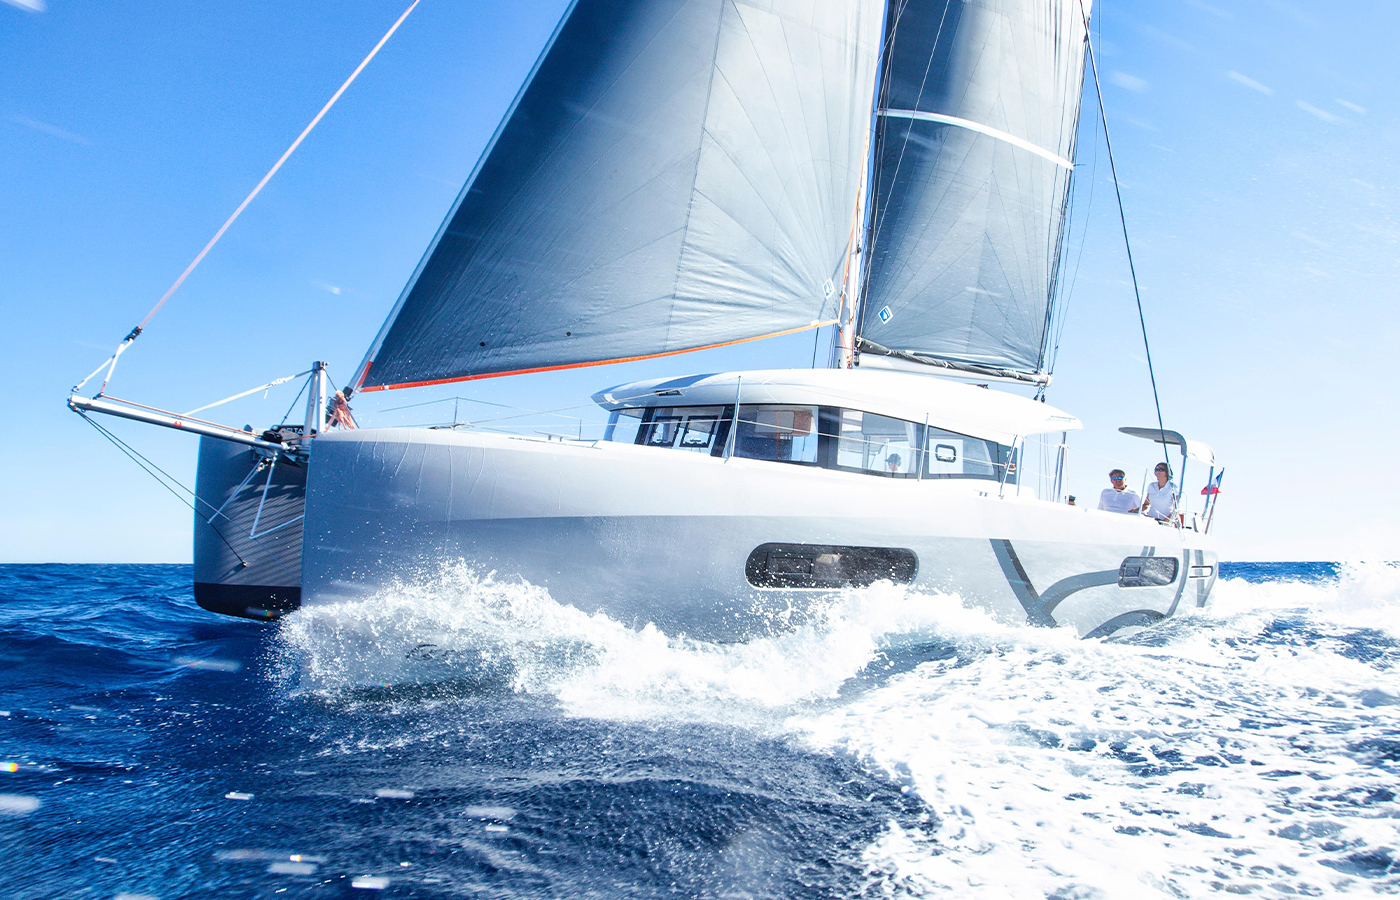 5 Reasons To Buy An Excess 12 Catamaran [New Boat For Sale]